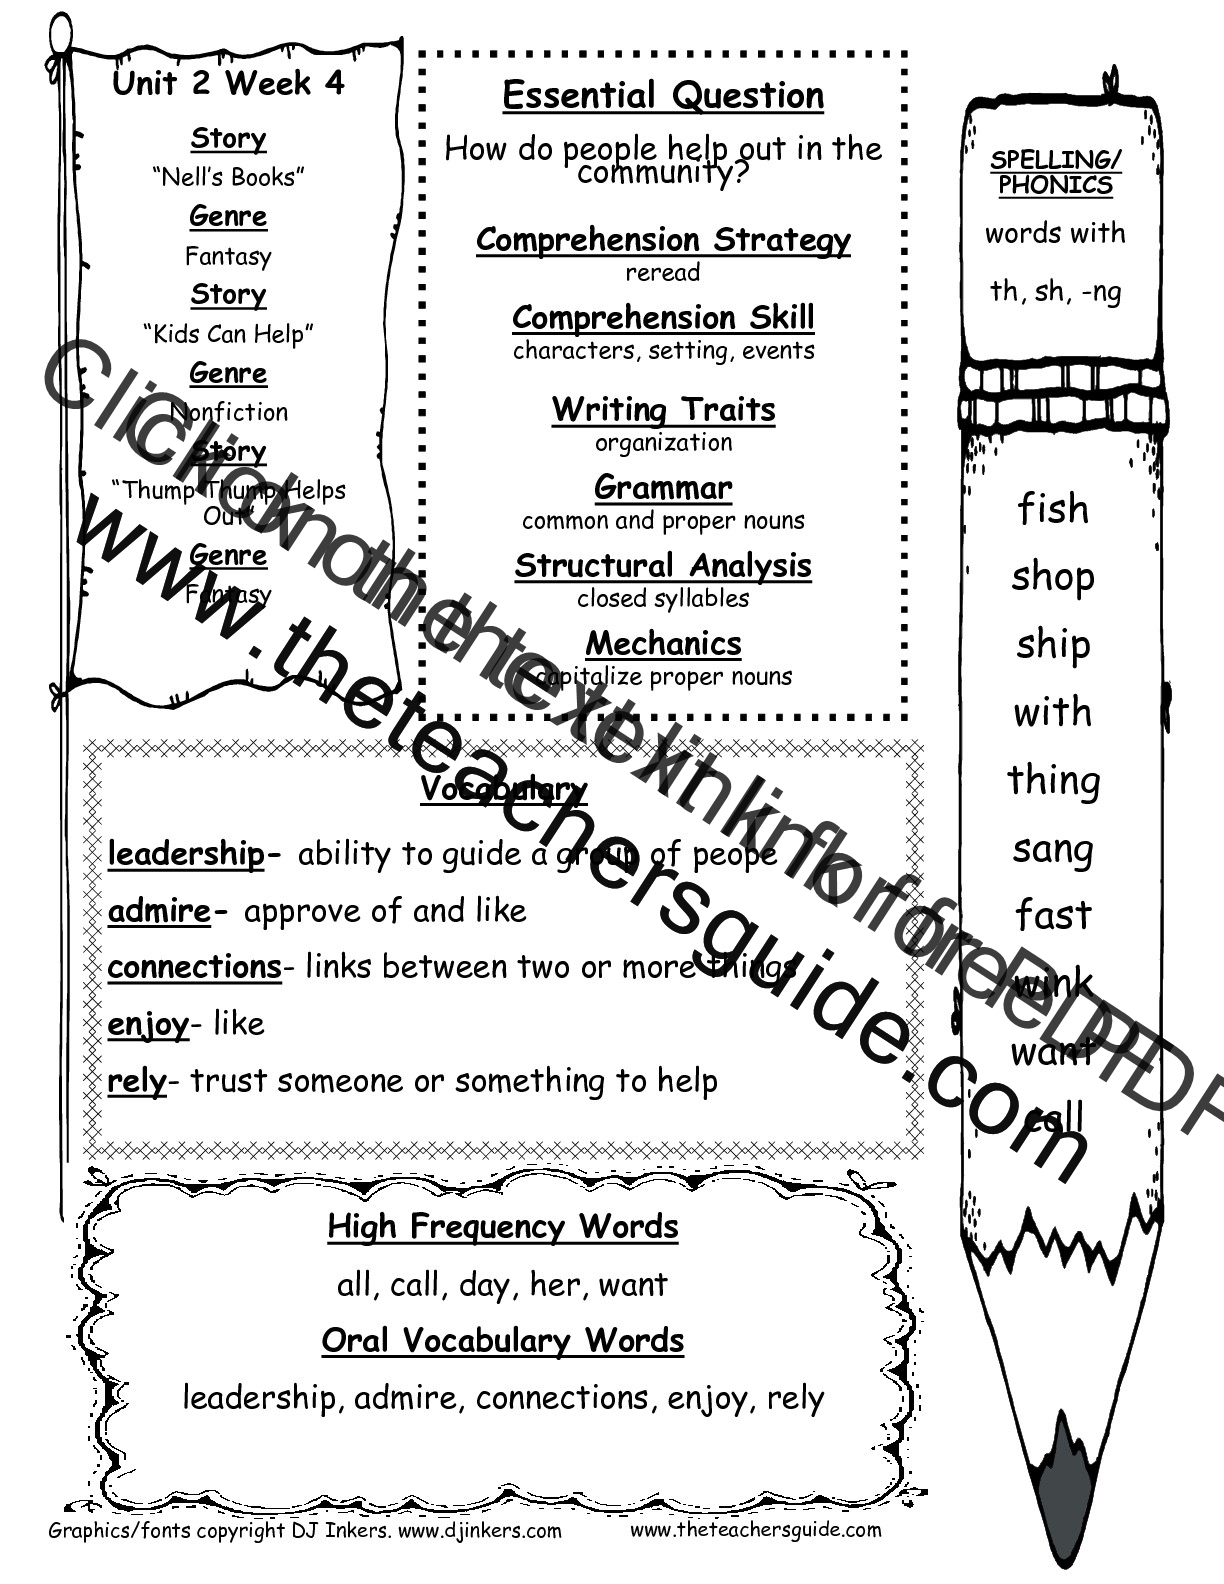 Worksheets Science Worksheets For 1st Grade mcgraw hill wonders first grade resources and printouts unit 2 4 two week four